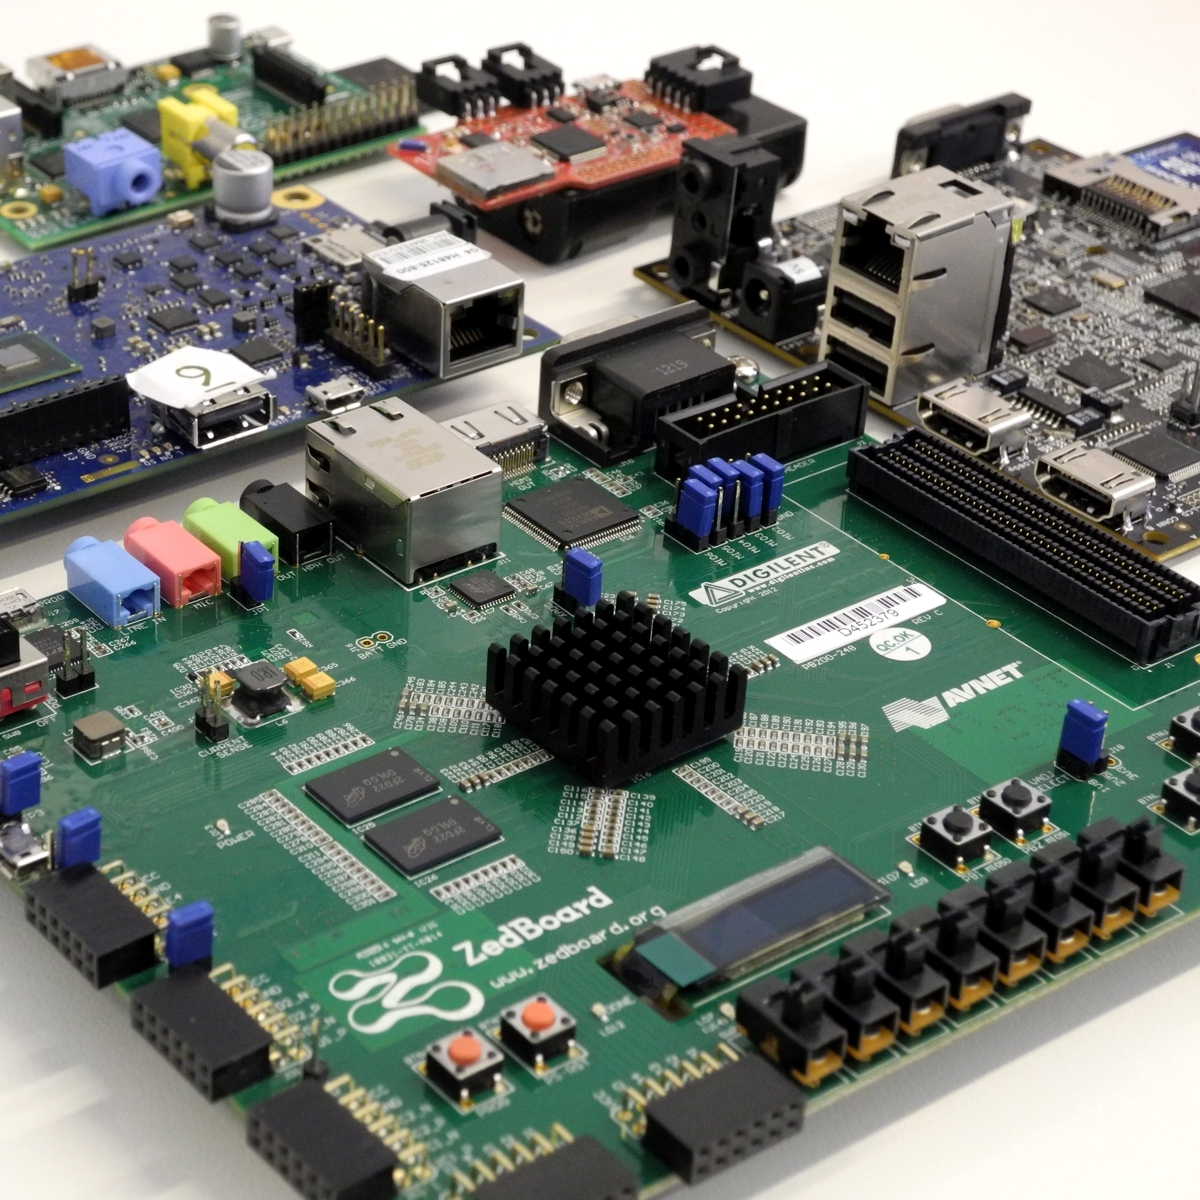 Embedded Hardware and Operating Systems course image